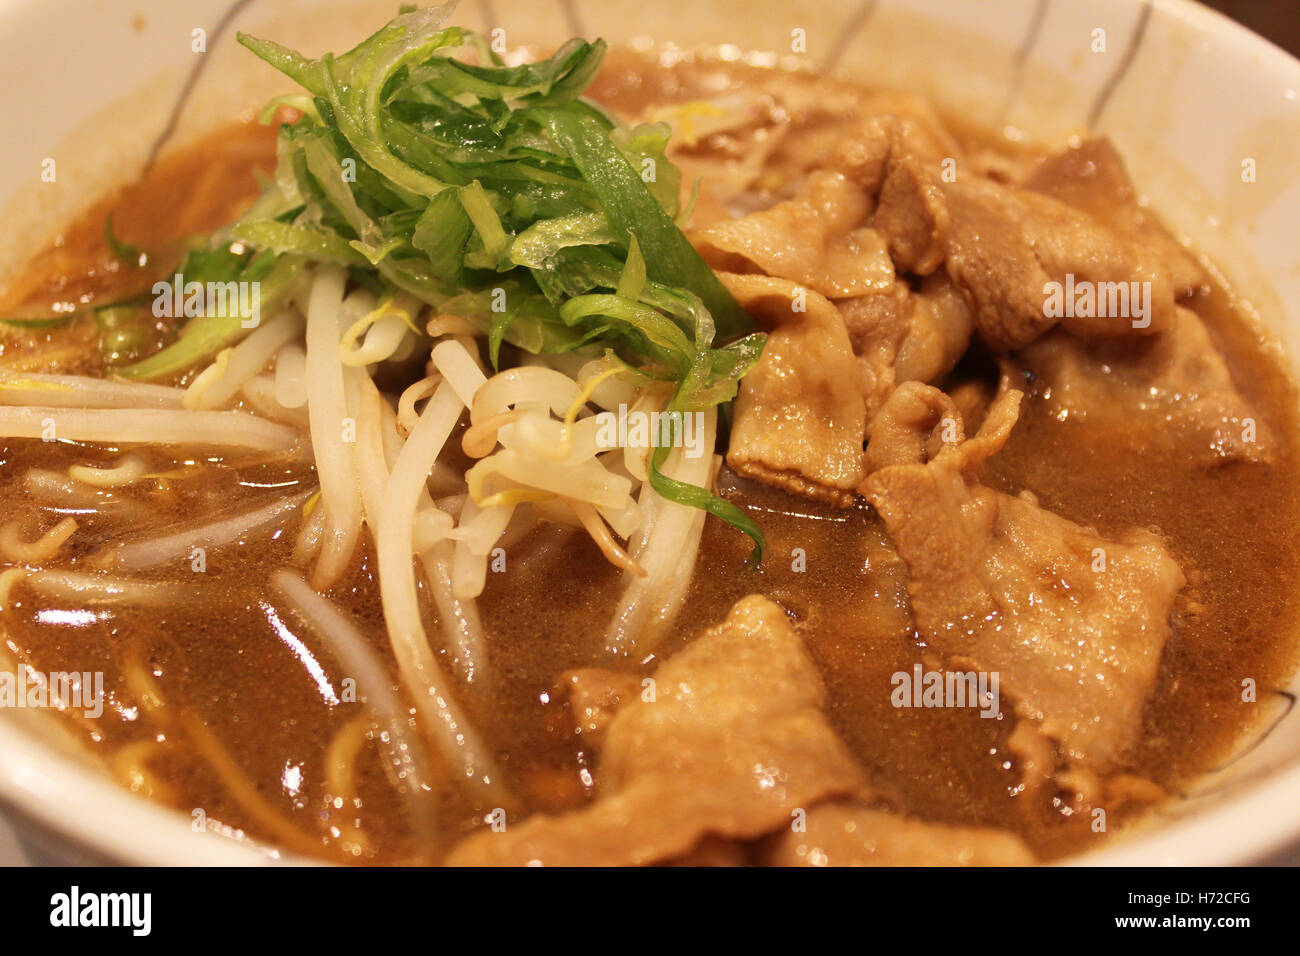 Japanese Ramen with sliced pork, green onion, bean sprouts and noodles in Osaka, Japan - Stock Image